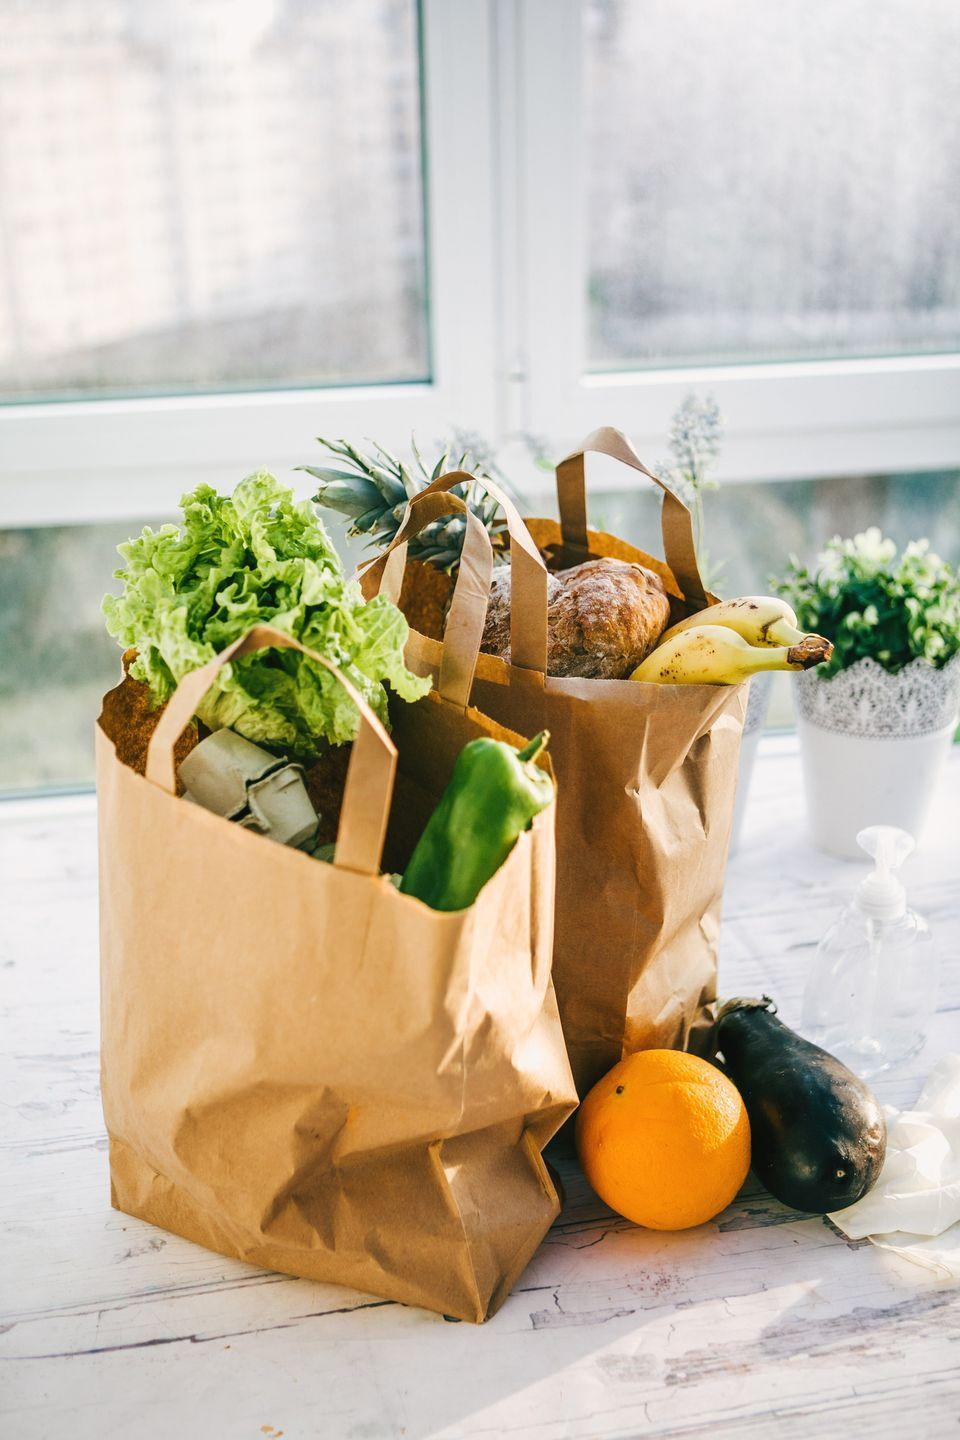 """<p>Although Amazon entered the grocery game, there are still delivery systems that <a href=""""https://gigsdoneright.com/amazon-fresh-vs-instacart/"""" rel=""""nofollow noopener"""" target=""""_blank"""" data-ylk=""""slk:outrank the retail giant"""" class=""""link rapid-noclick-resp"""">outrank the retail giant</a>. Instacart, for example, has more store partnerships than Amazon which leads to a wider product availability and doesn't charge fees for same-day delivery. The app is also available in more cities than Amazon Fresh.</p>"""